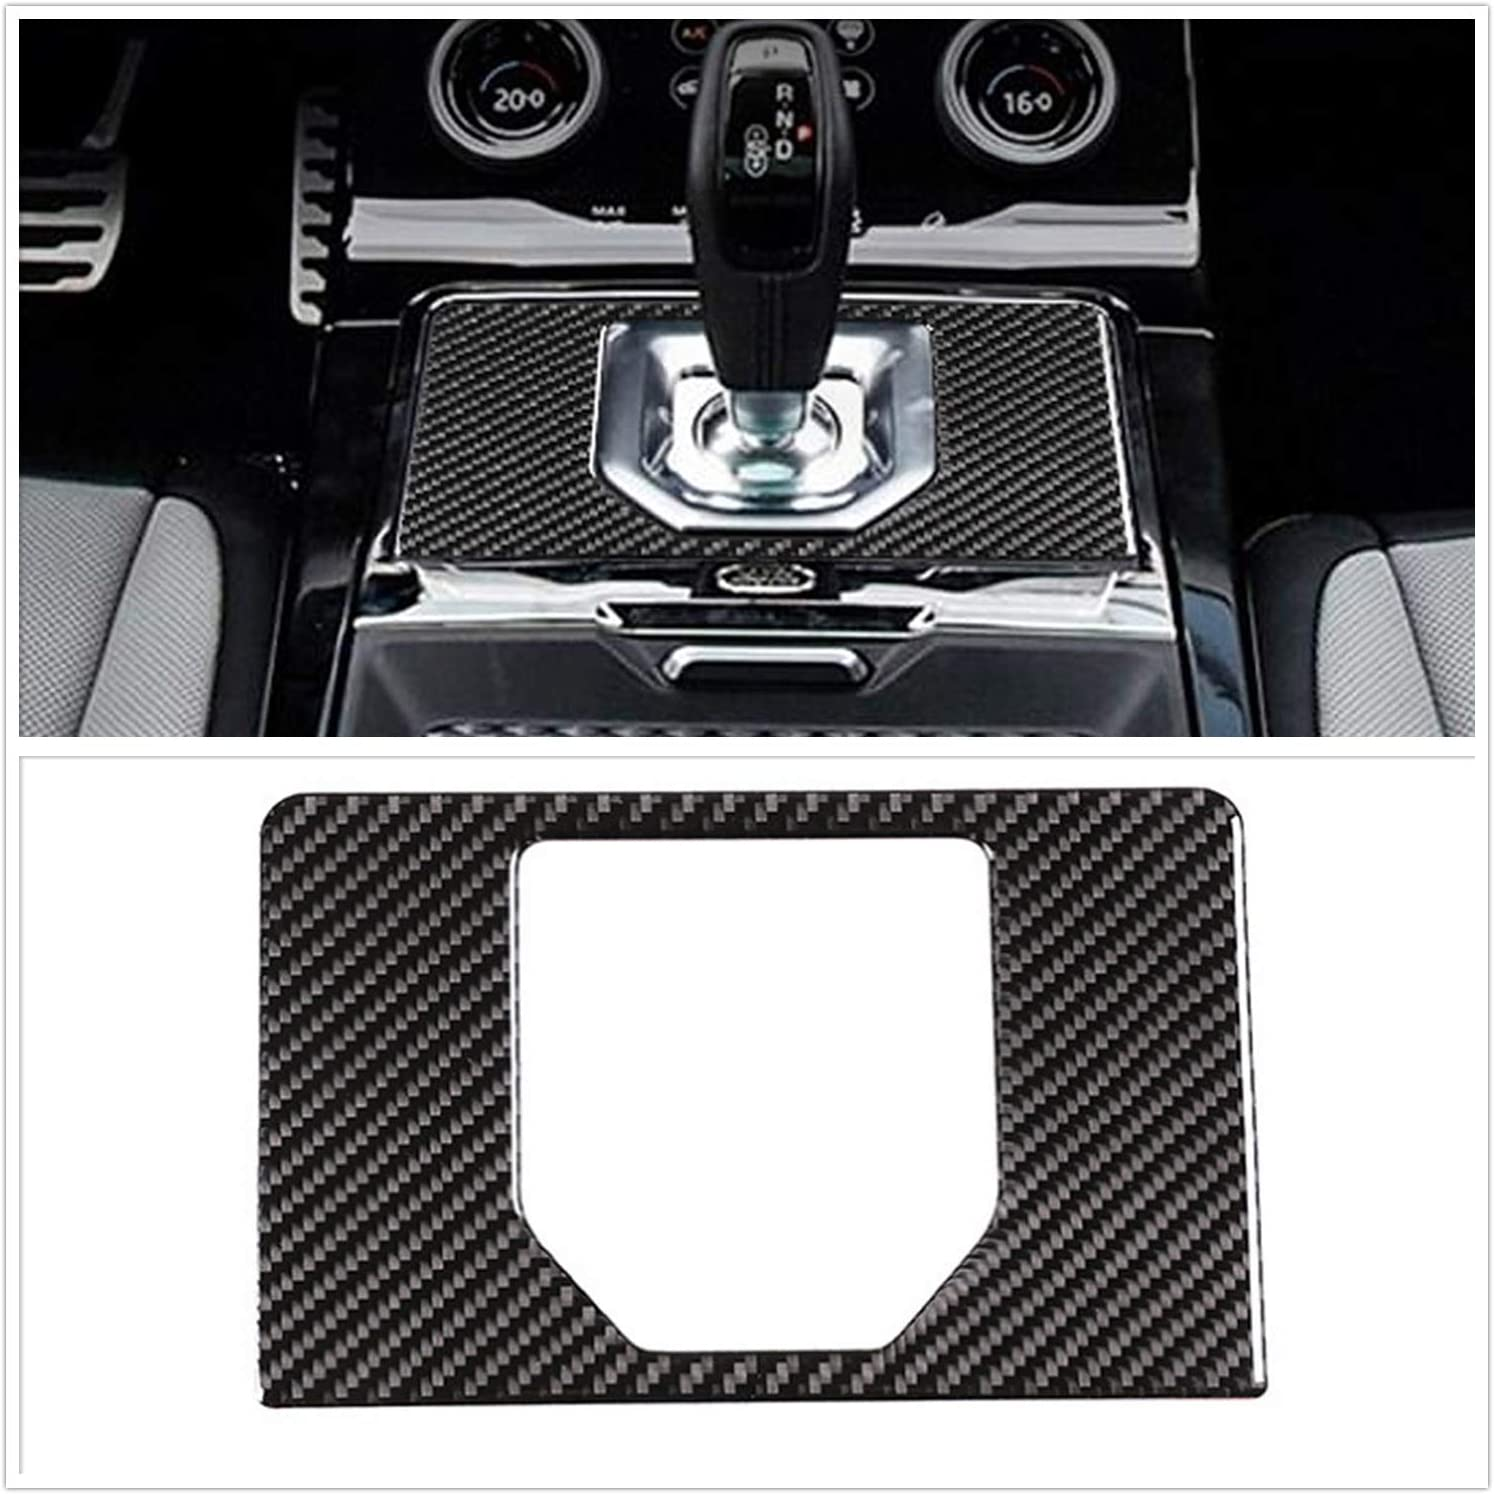 YOCTM Real Carbon Fiber Decals For Land Rover Evoque 2020 + Gear Shift Panel Cover Sticker Car Styling Moldings